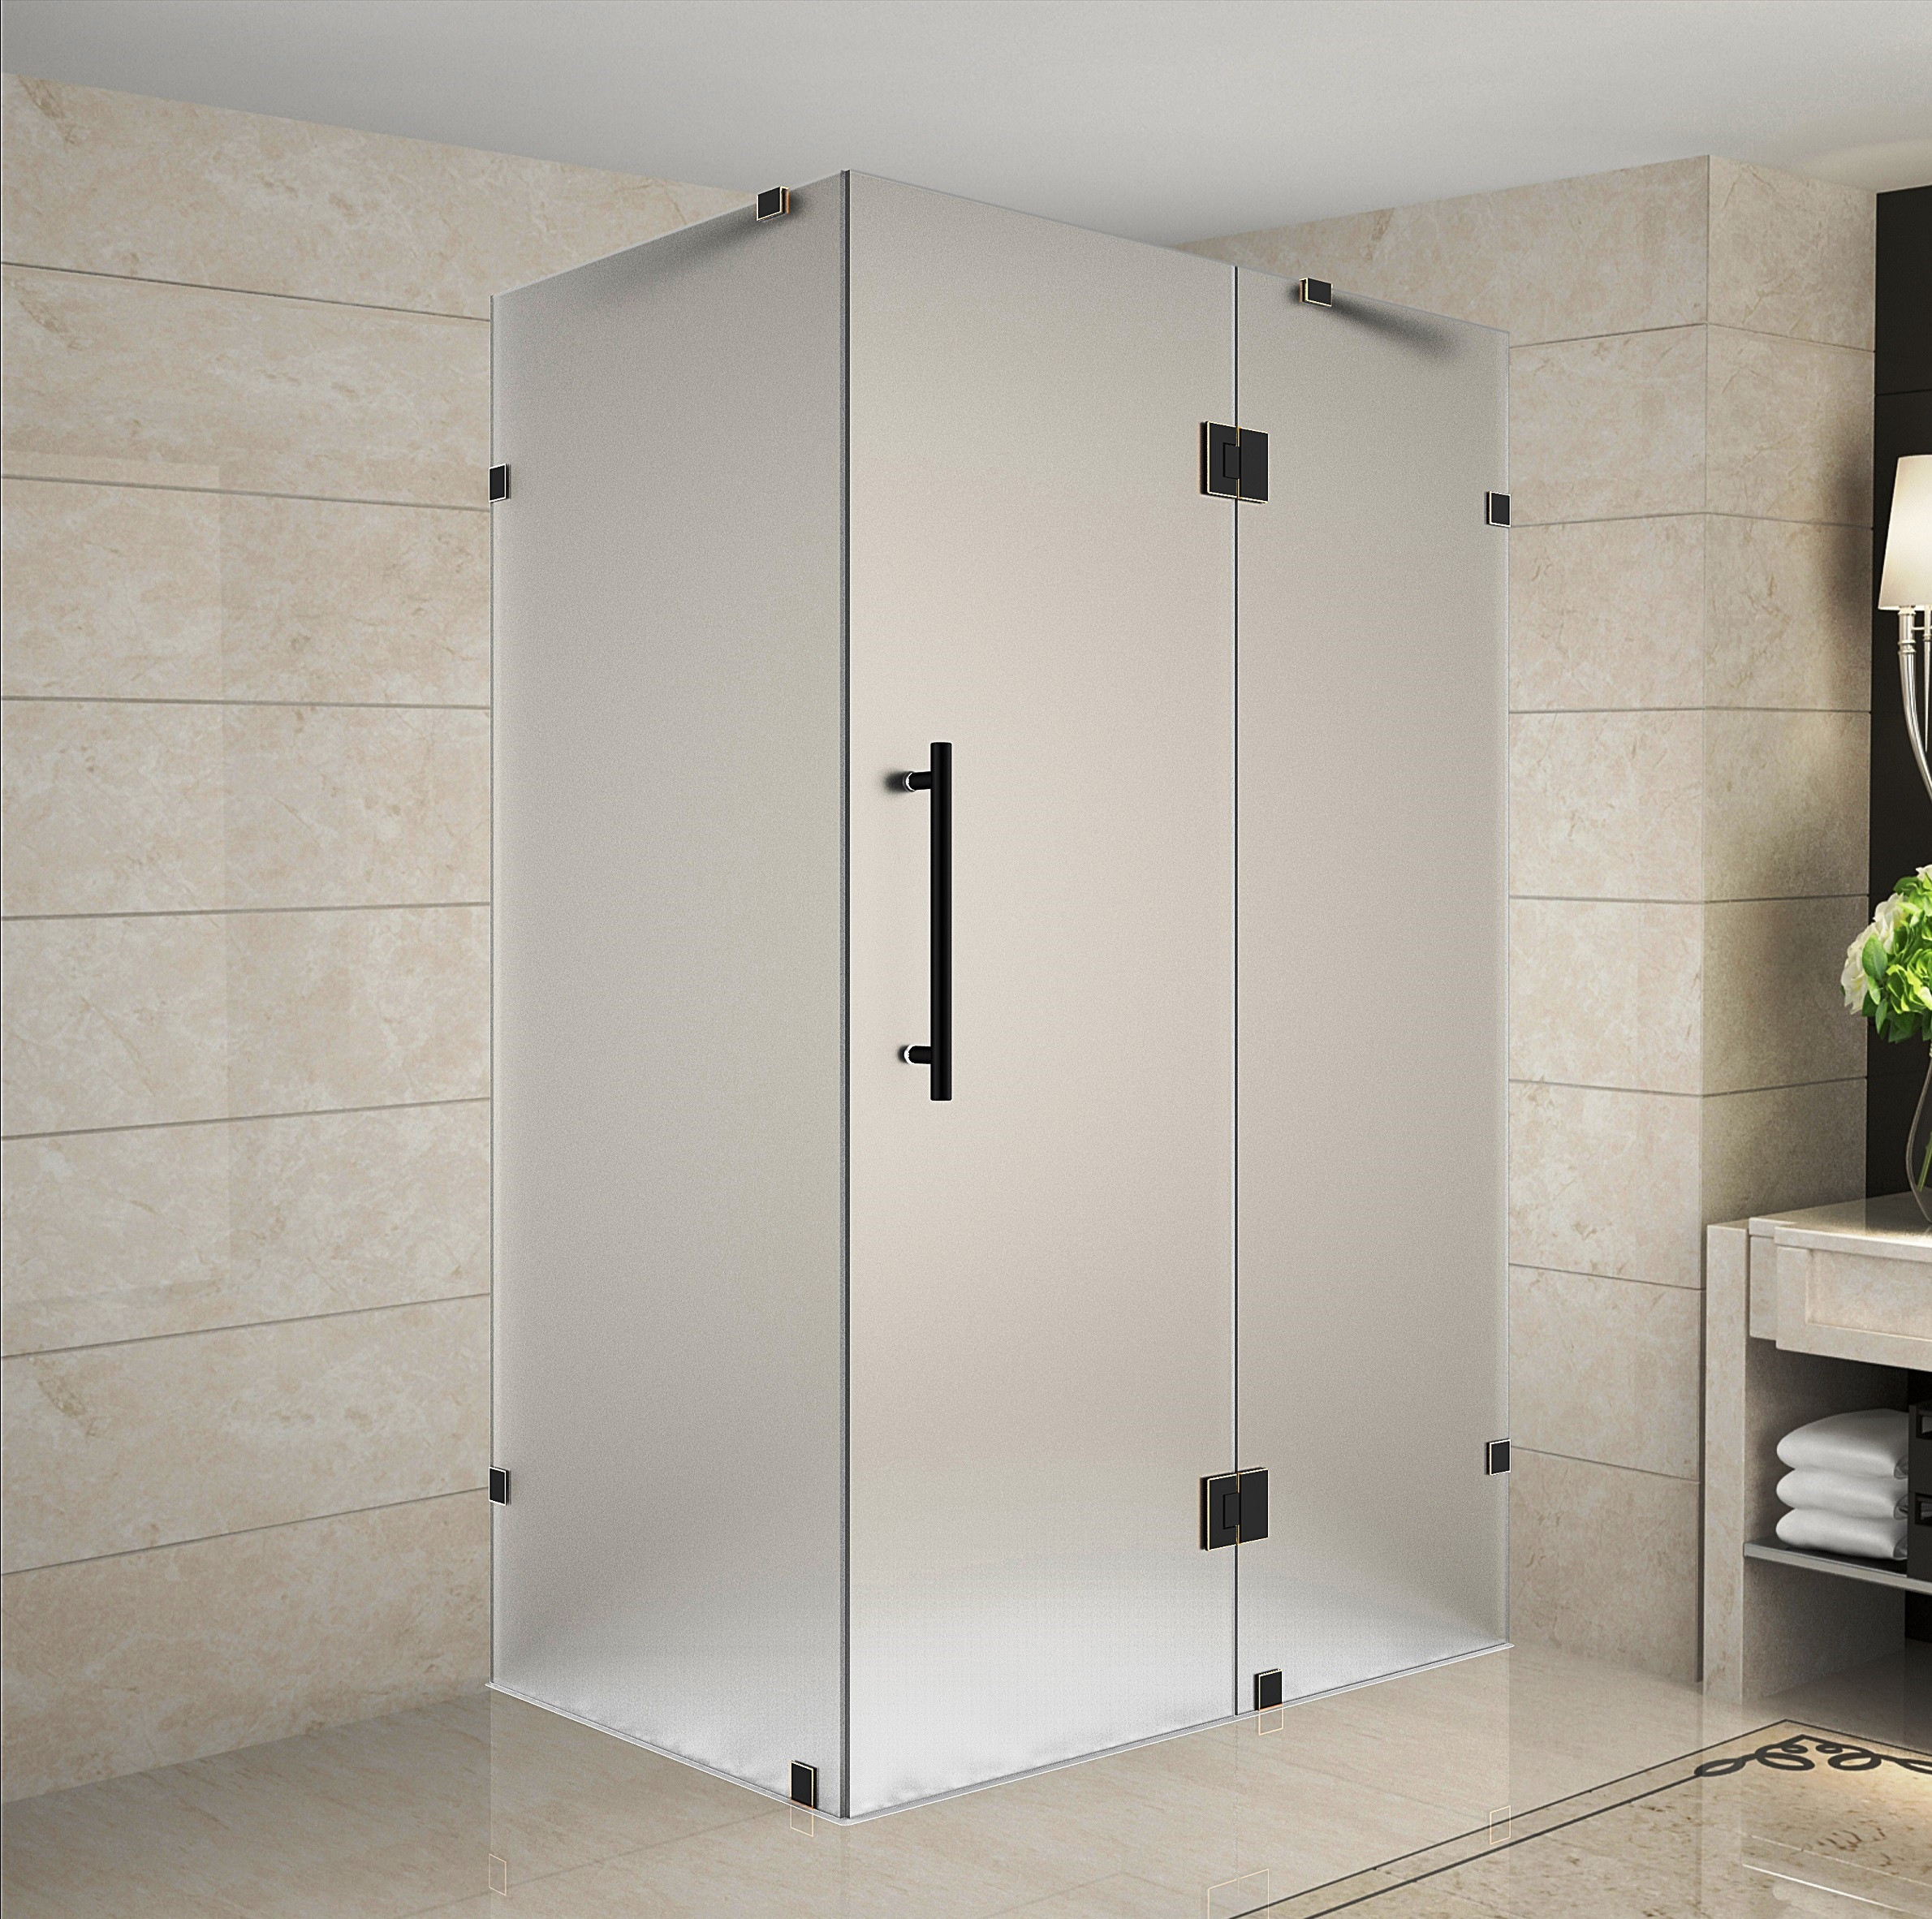 Aston Global SEN987F-ORB-3330-10 Frameless Frosted Glass Shower Enclosure In Oil Rubbed Bronze